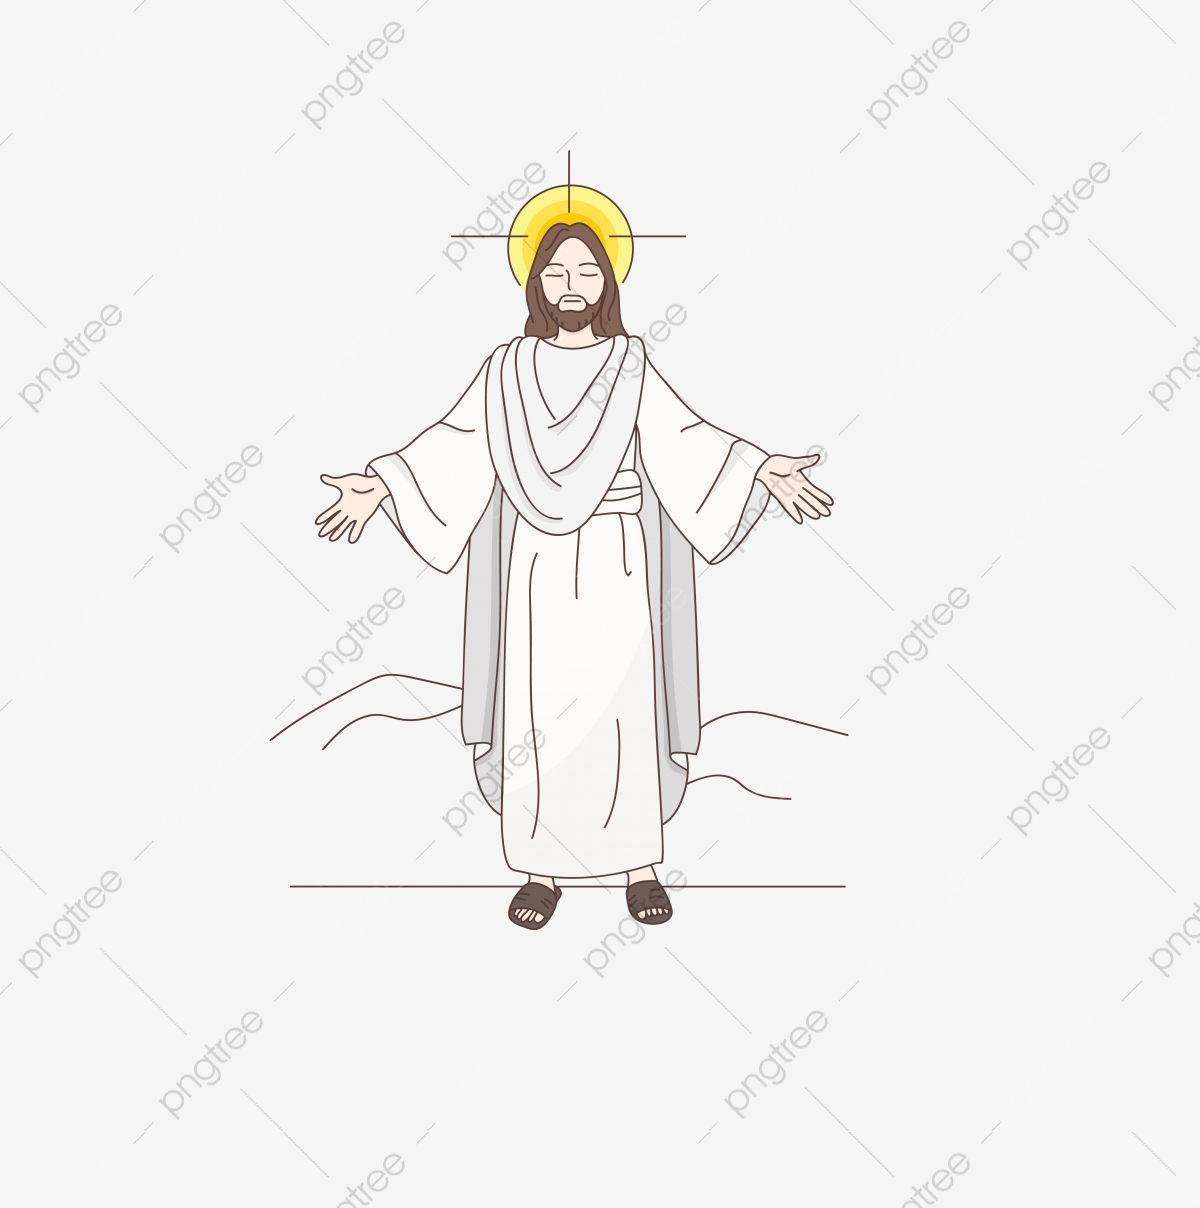 Easter Jesus Christ Cartoon Image Jesus Clipart Jesus Easter Png And Vector With Transparent Background For Free Download Tooth cartoon, wearing a crown of teeth, tooth with gold crown png clipart. https pngtree com freepng easter jesus christ cartoon image 4388995 html